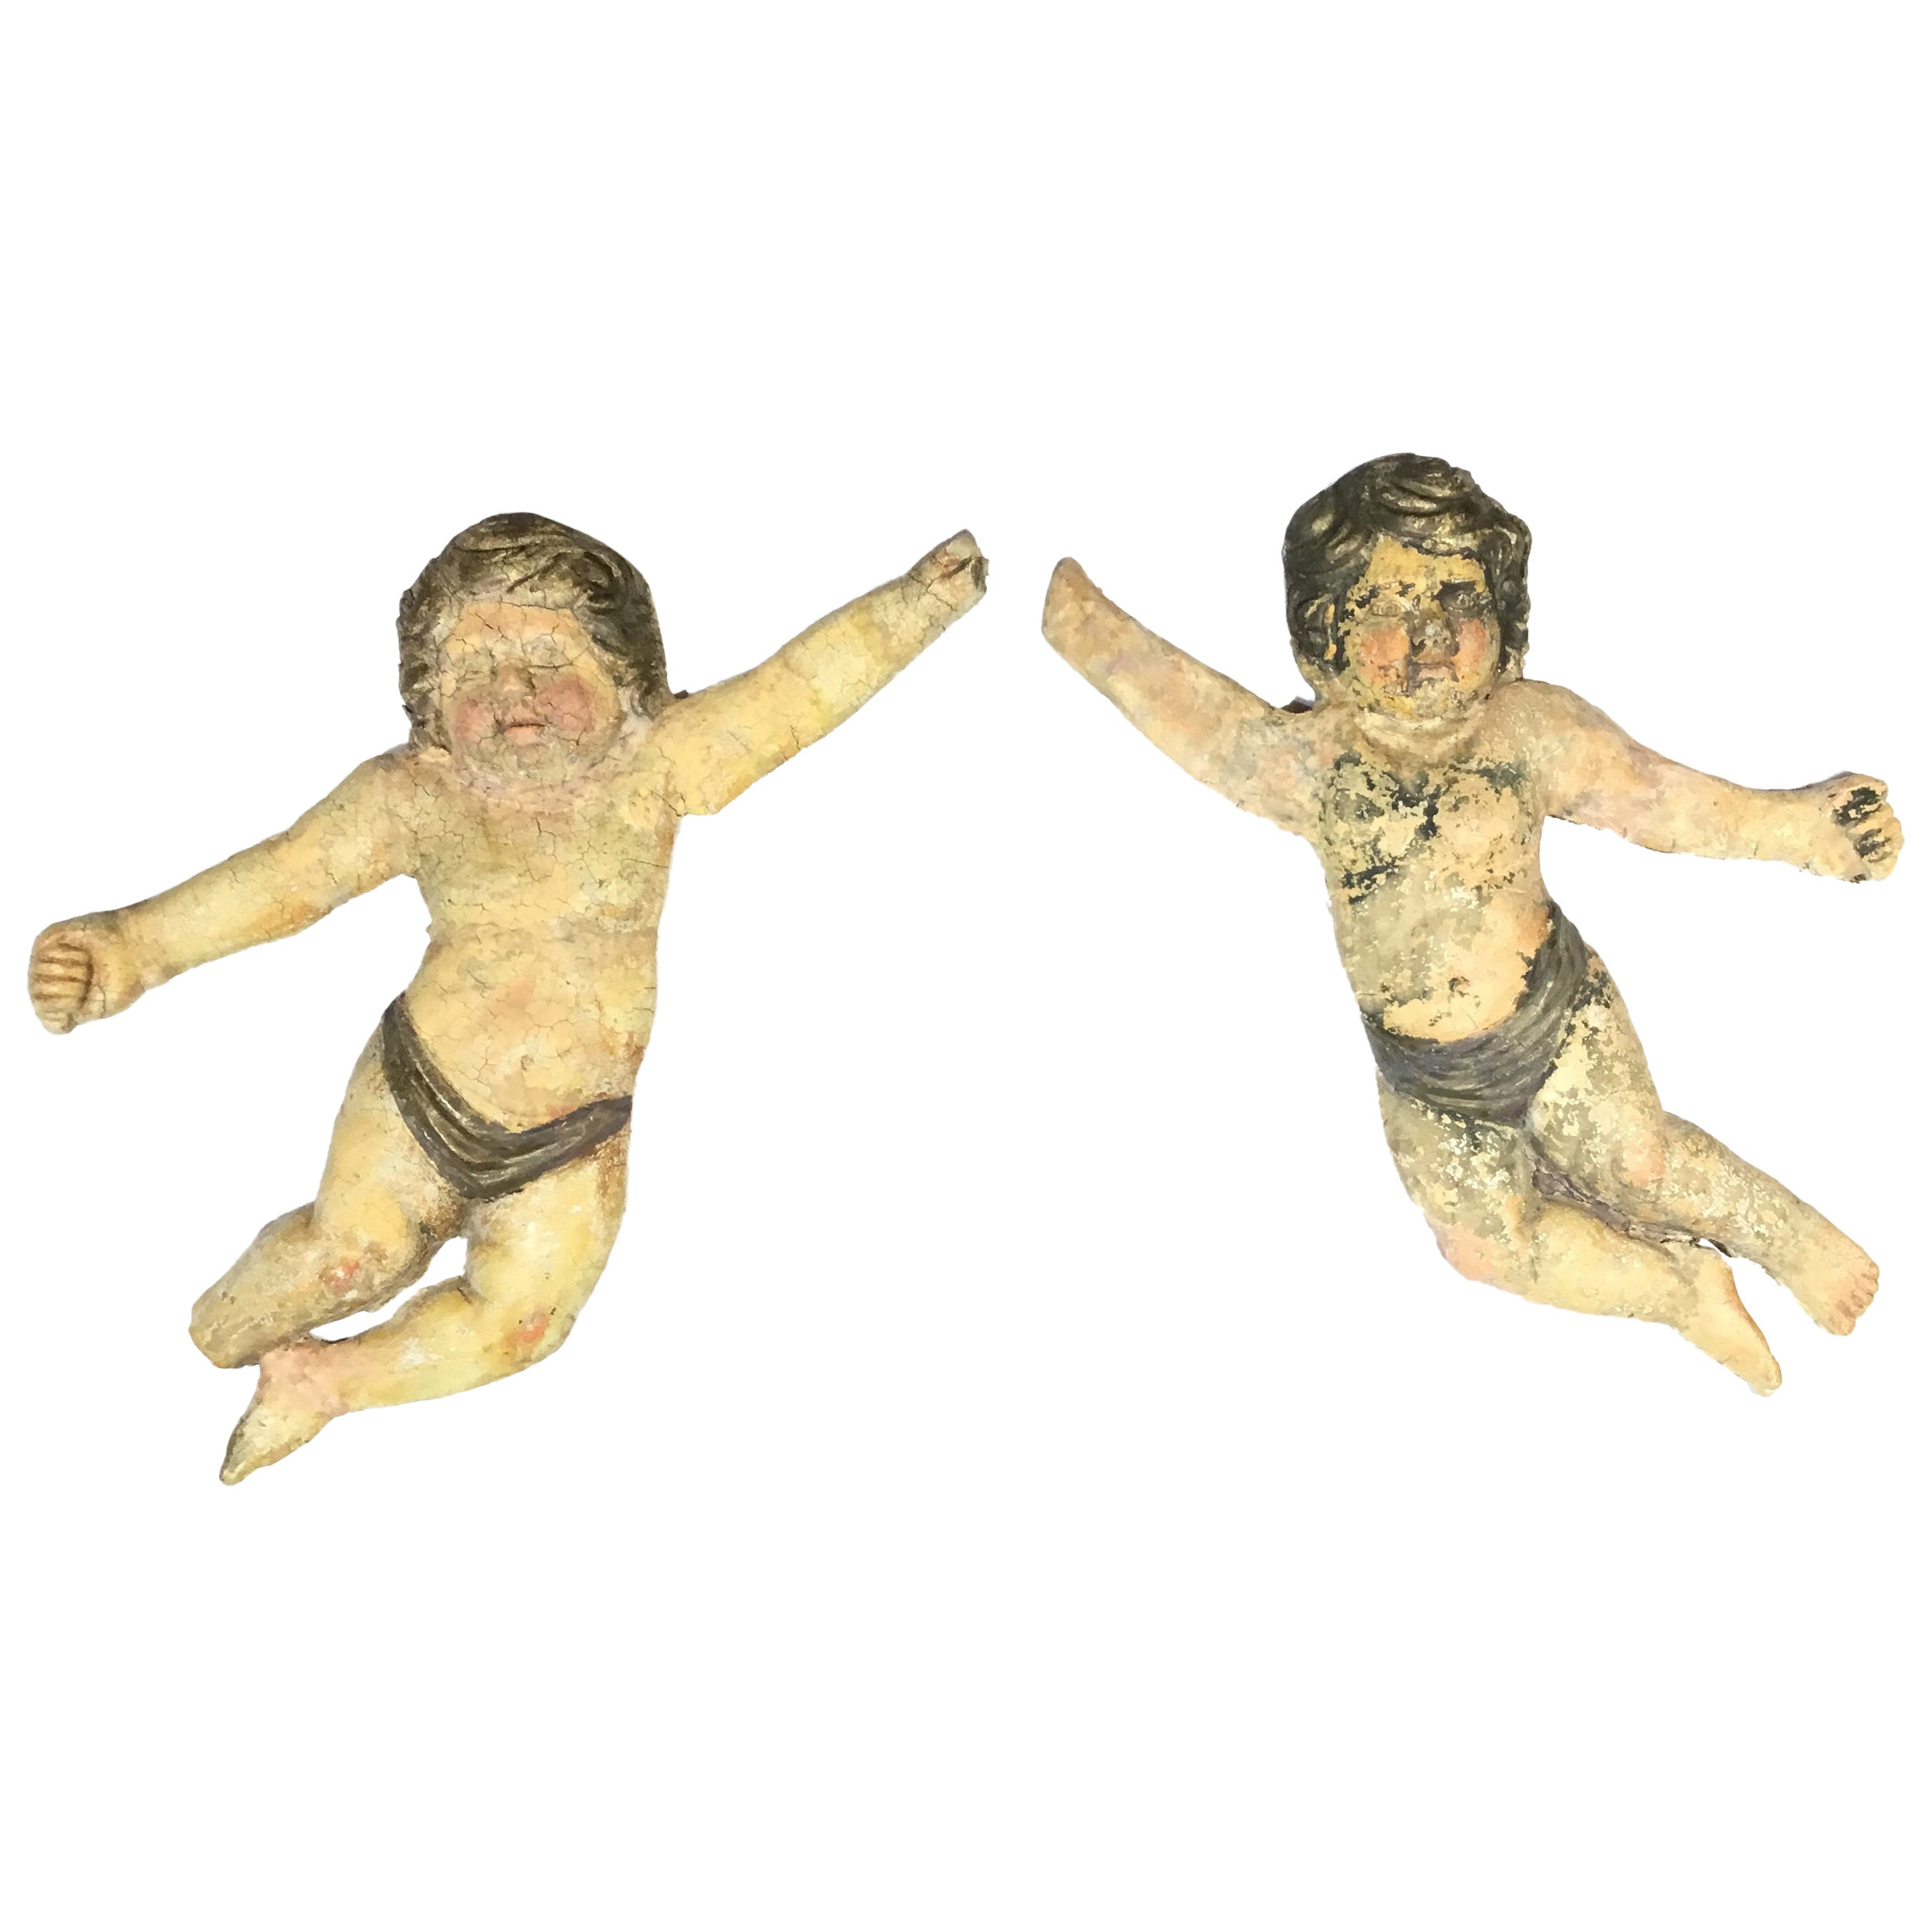 Pair of Antique Italian Wall Hanging Cherub